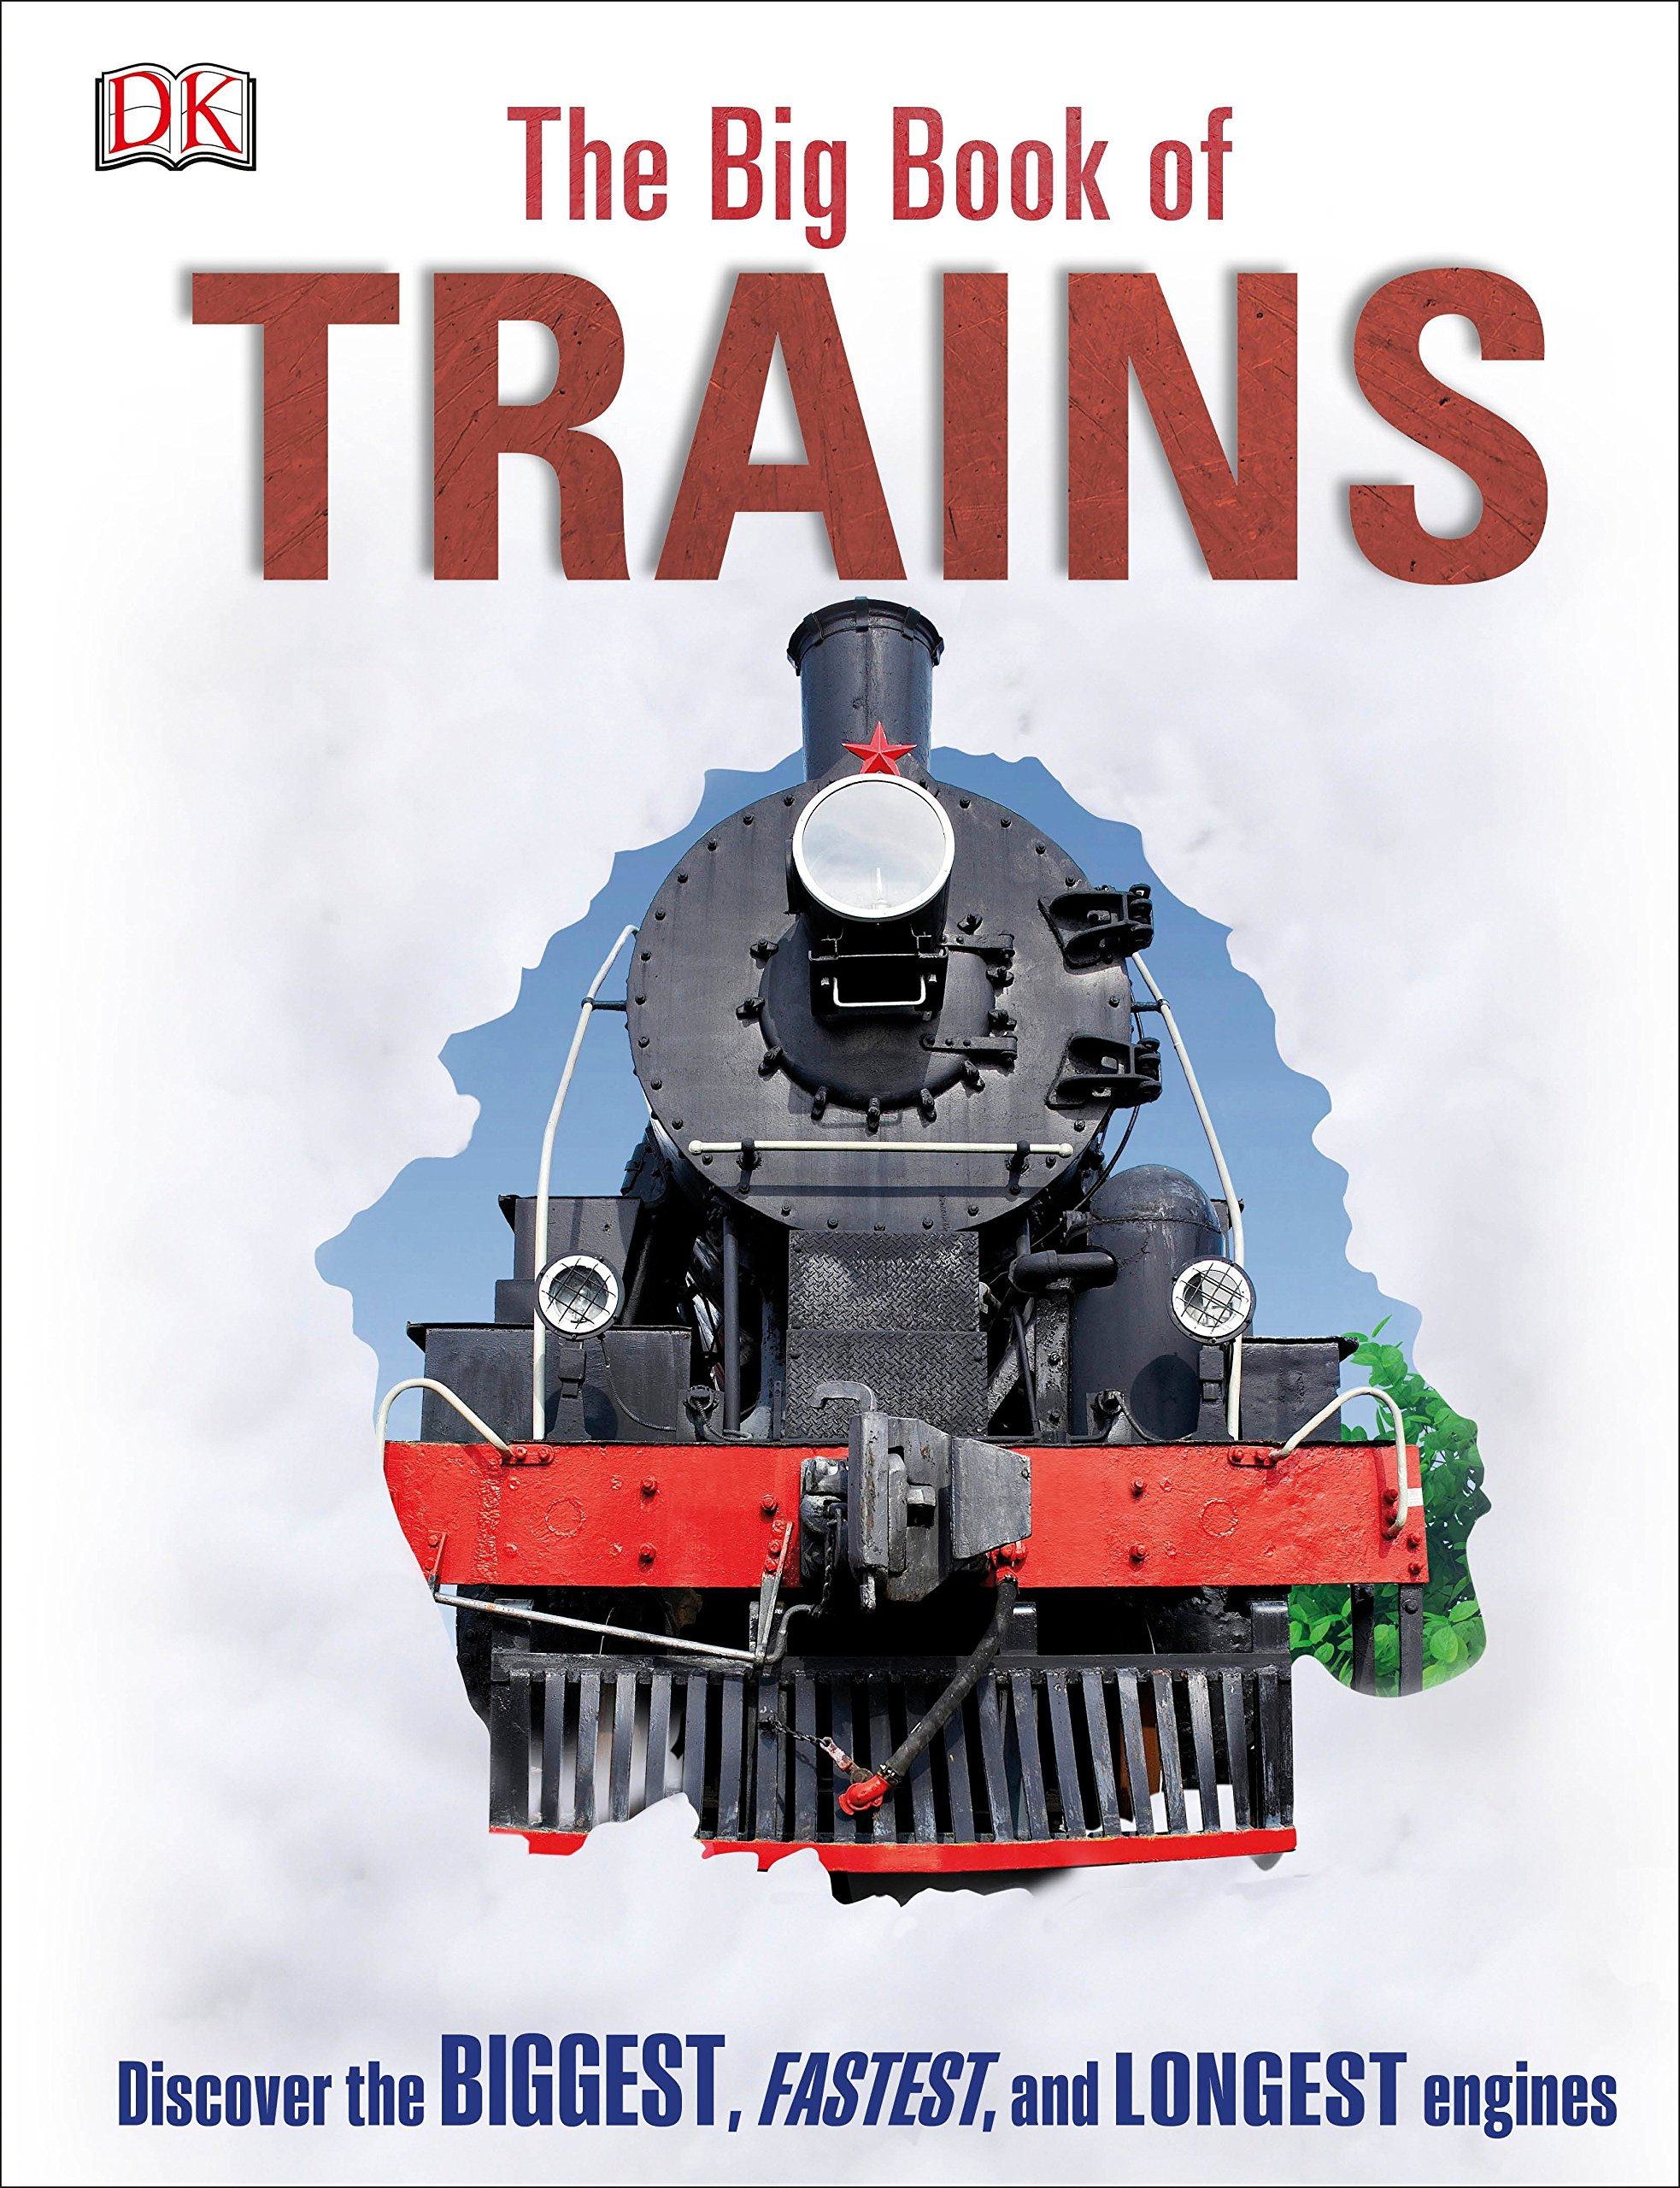 The Big Book of Trains by DK Publishing Dorling Kindersley